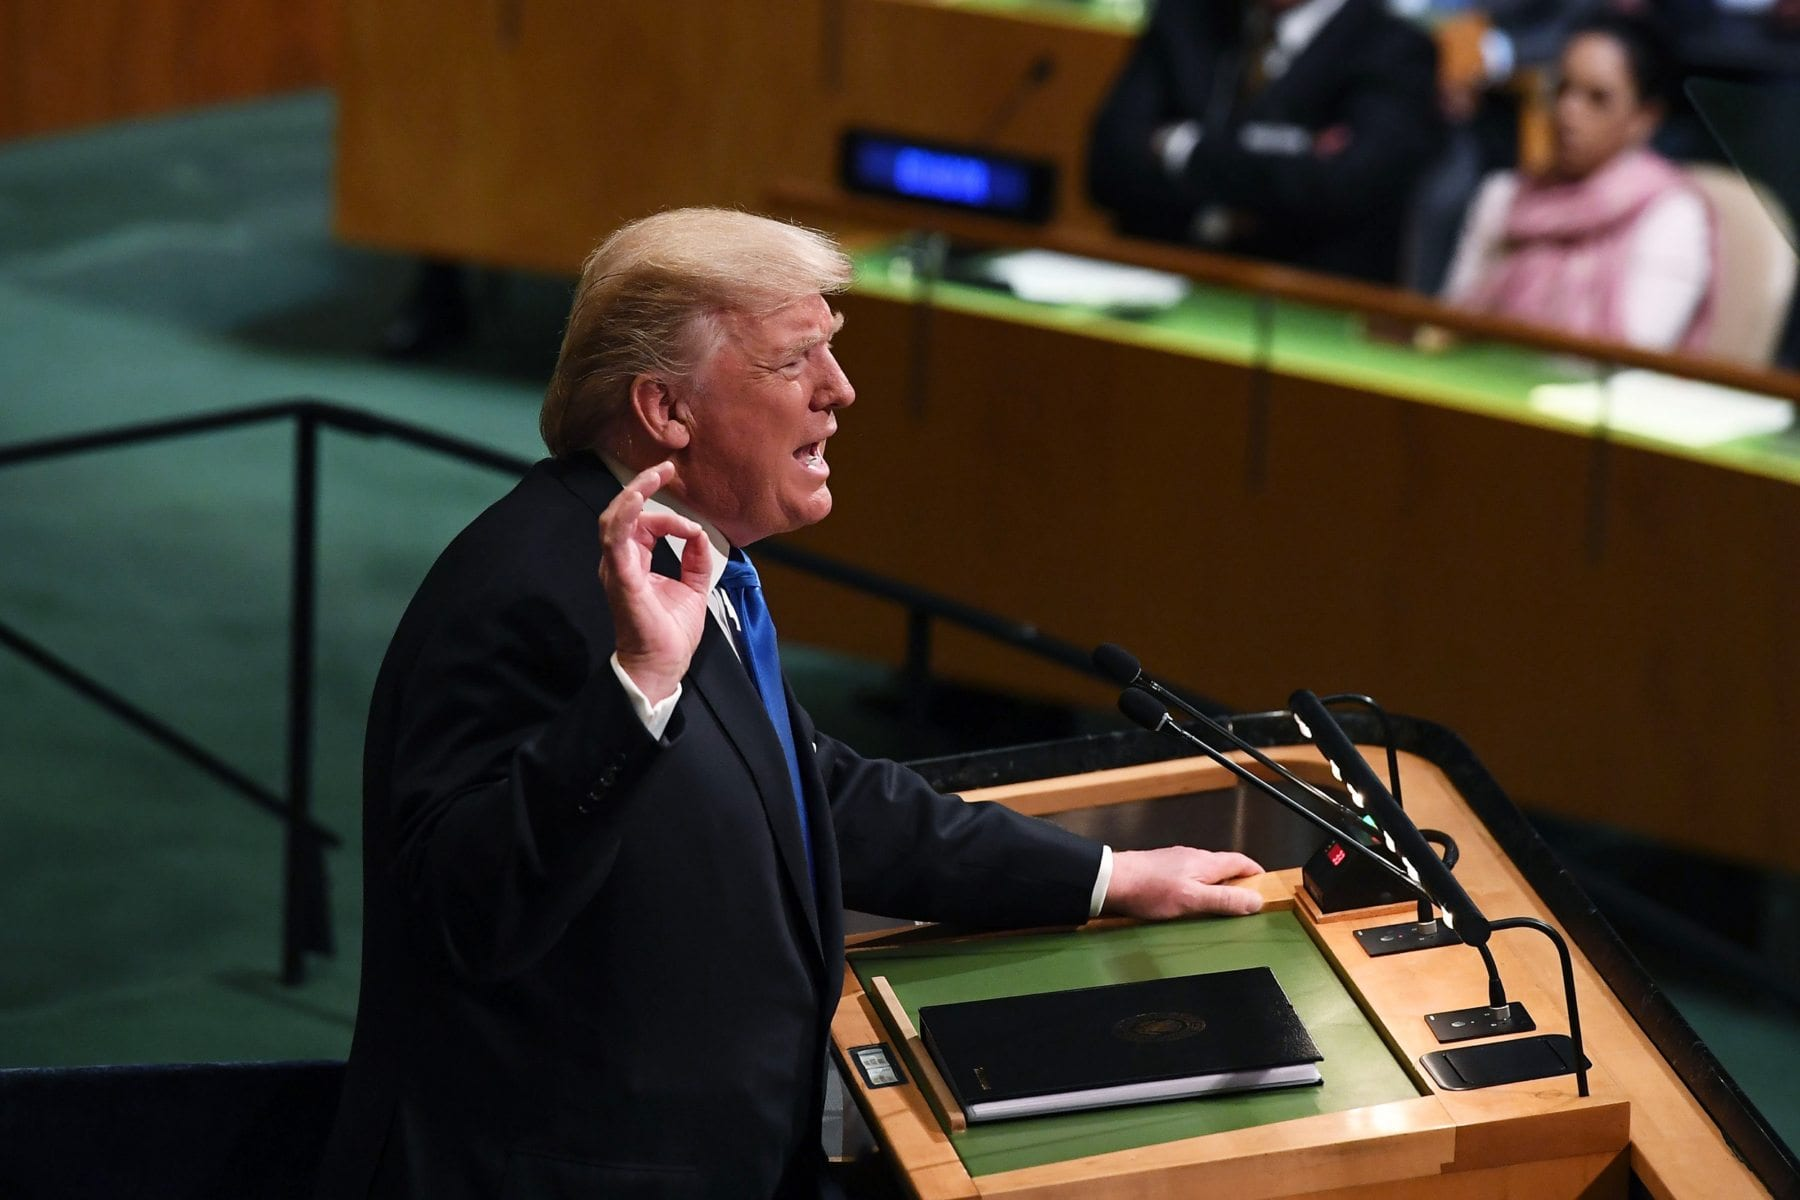 US President Donald Trump addresses the UN General Assembly in New York